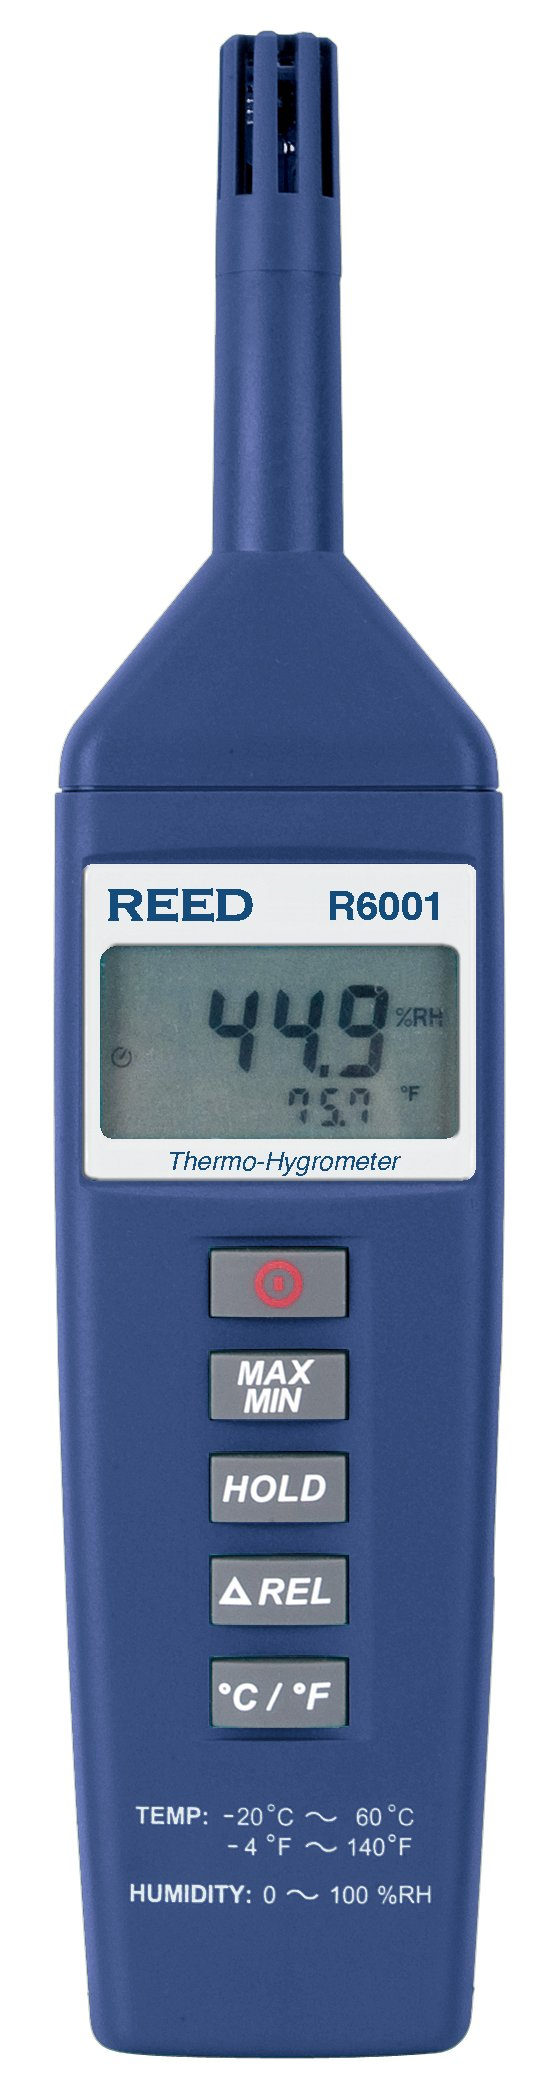 REED Instruments R6001 Thermo-Hygrometer, -4 to 140°F (-20 to 60°C), 0-100%RH with NIST Calibration Certificate